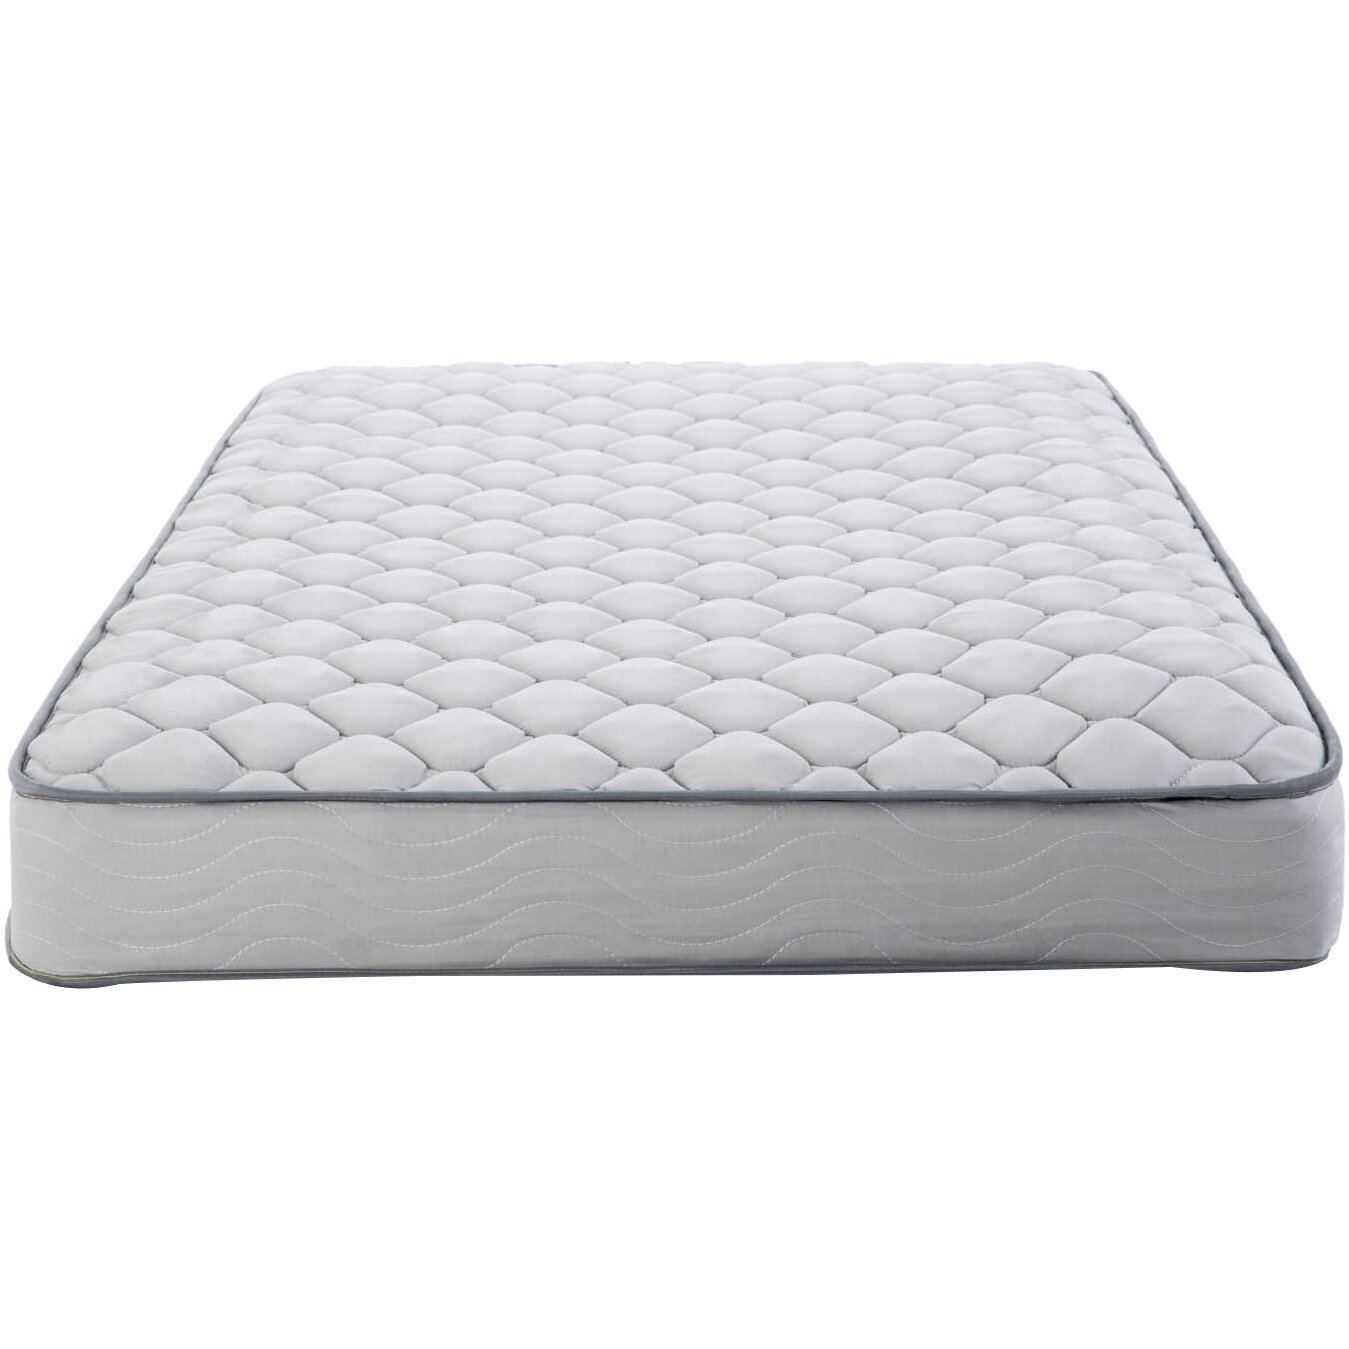 Linenspa 6 Inner Spring Mattress Reviews Wayfair